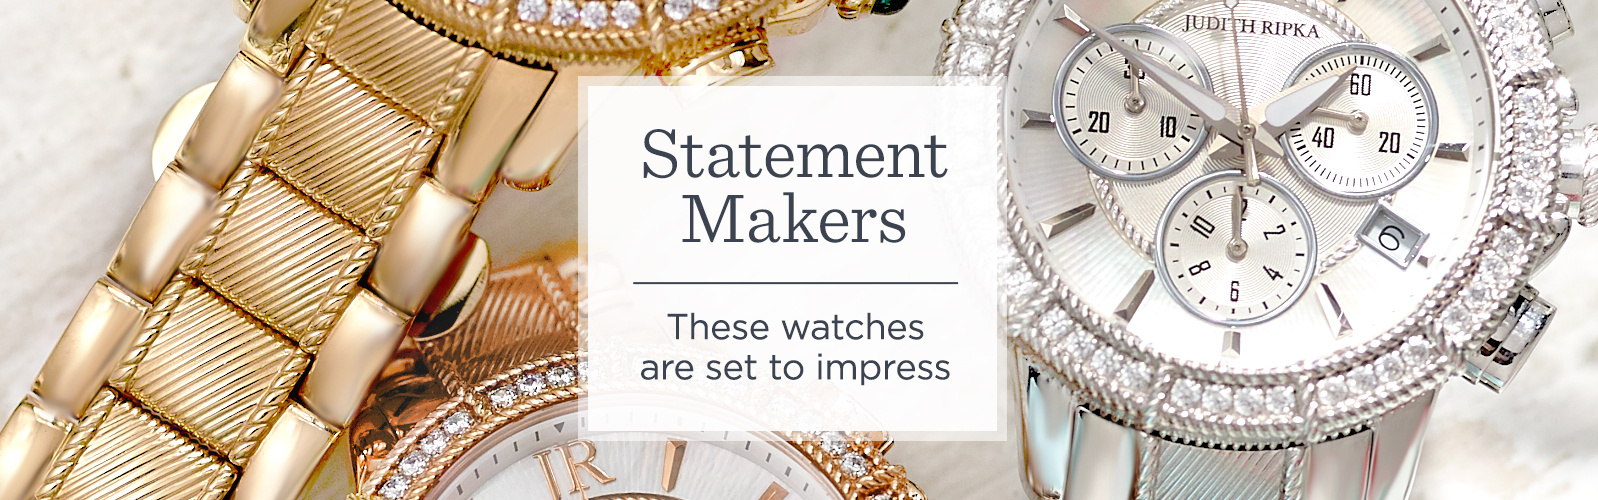 Statement Makers - These watches are set to impress